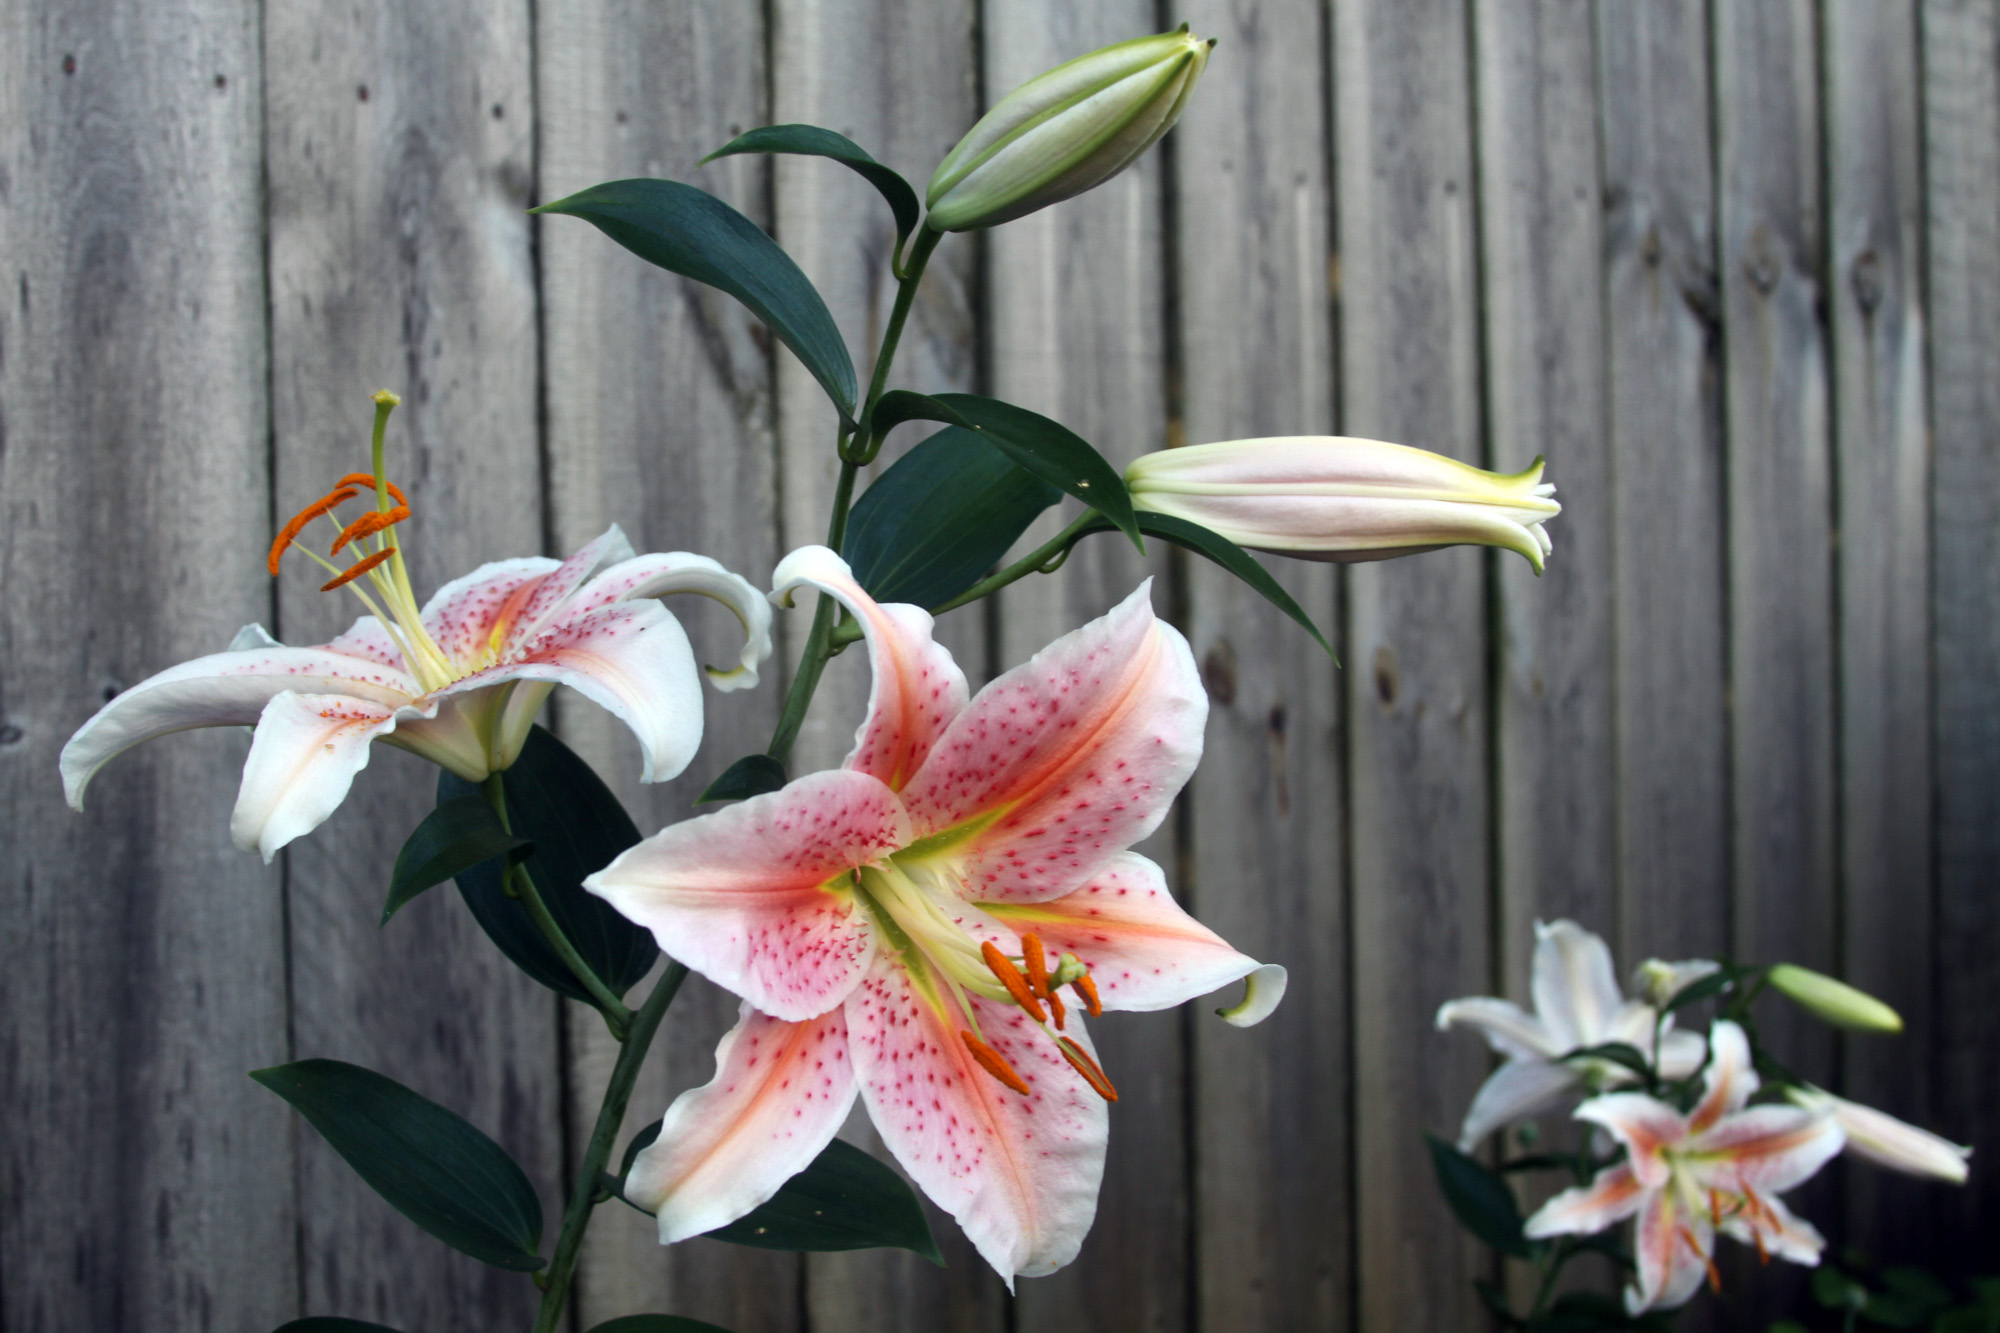 The Lilies are Blooming in My Garden